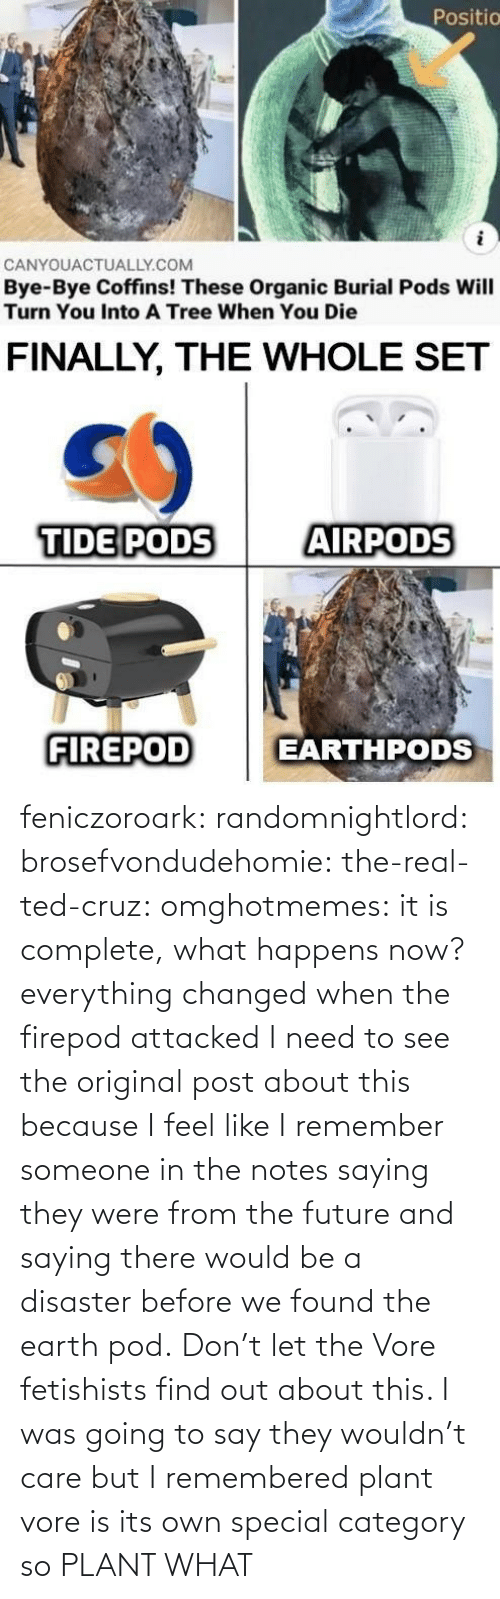 i remember: feniczoroark:  randomnightlord:  brosefvondudehomie: the-real-ted-cruz:  omghotmemes: it is complete, what happens now? everything changed when the firepod attacked    I need to see the original post about this because I feel like I remember someone in the notes saying they were from the future and saying there would be a disaster before we found the earth pod.    Don't let the Vore fetishists find out about this.    I was going to say they wouldn't care but I remembered plant vore is its own special category so   PLANT WHAT